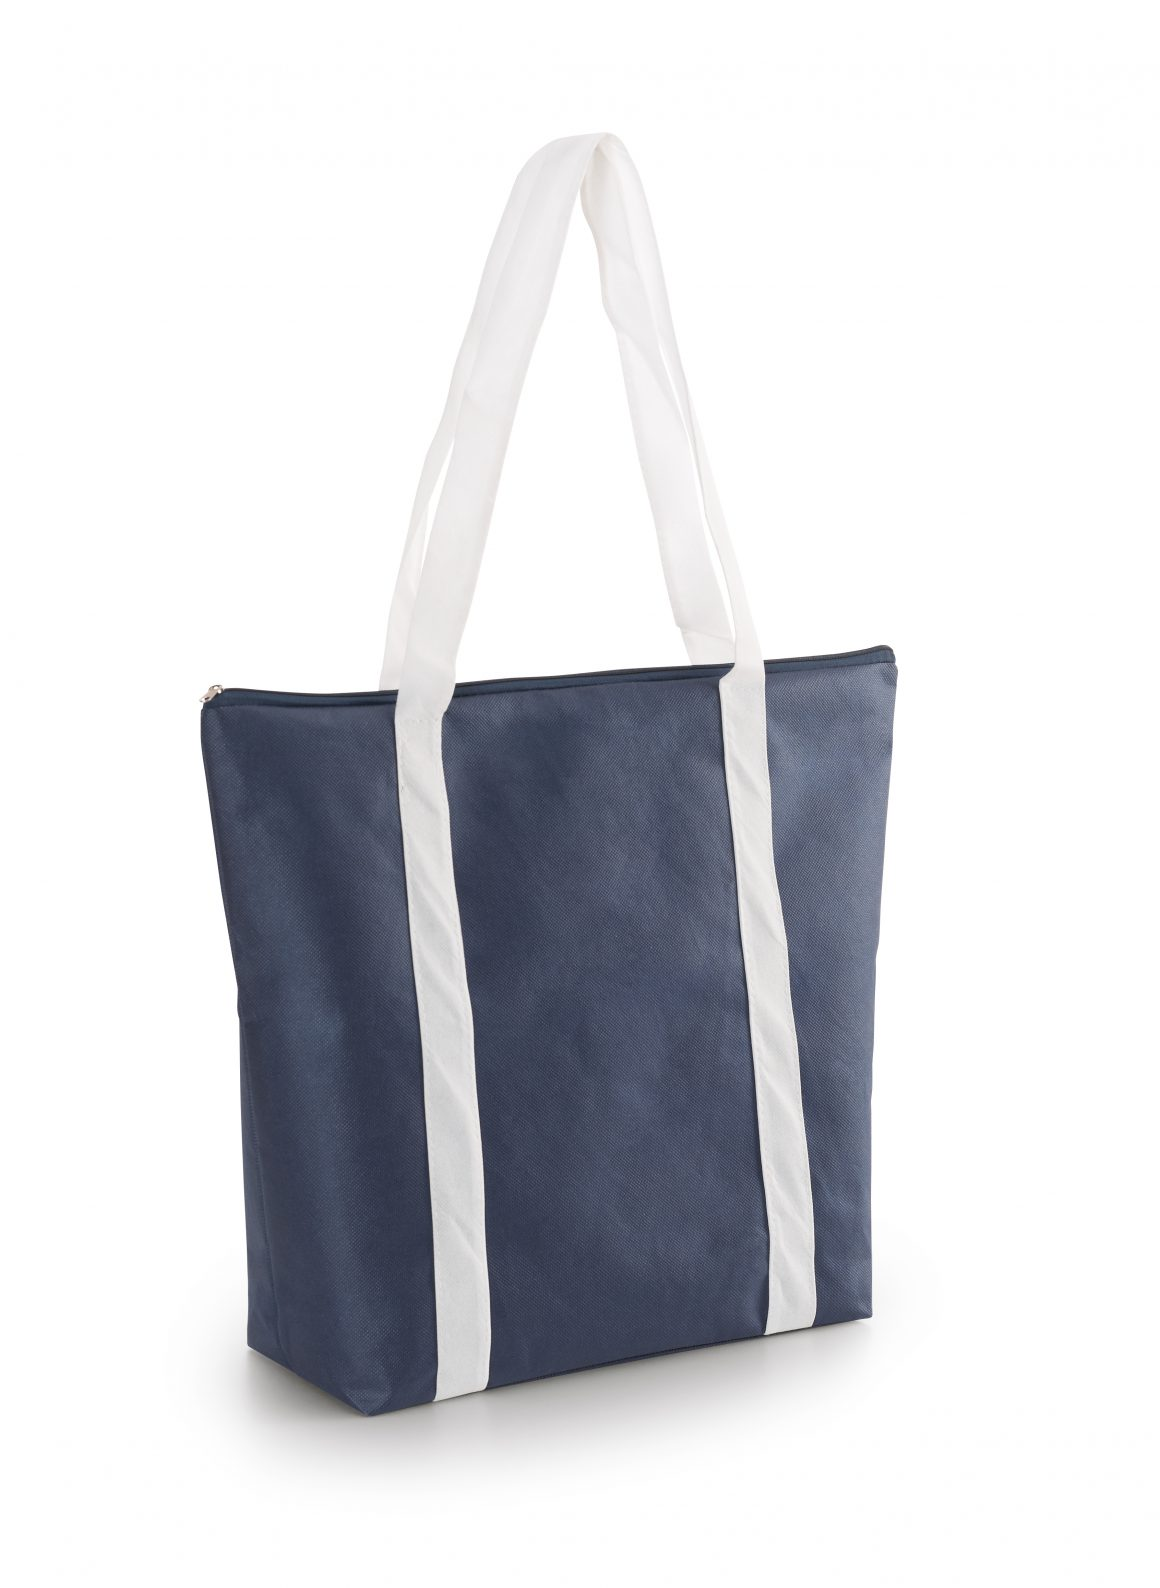 Nessa Large Eco-friendly Bag Product Code GP92830